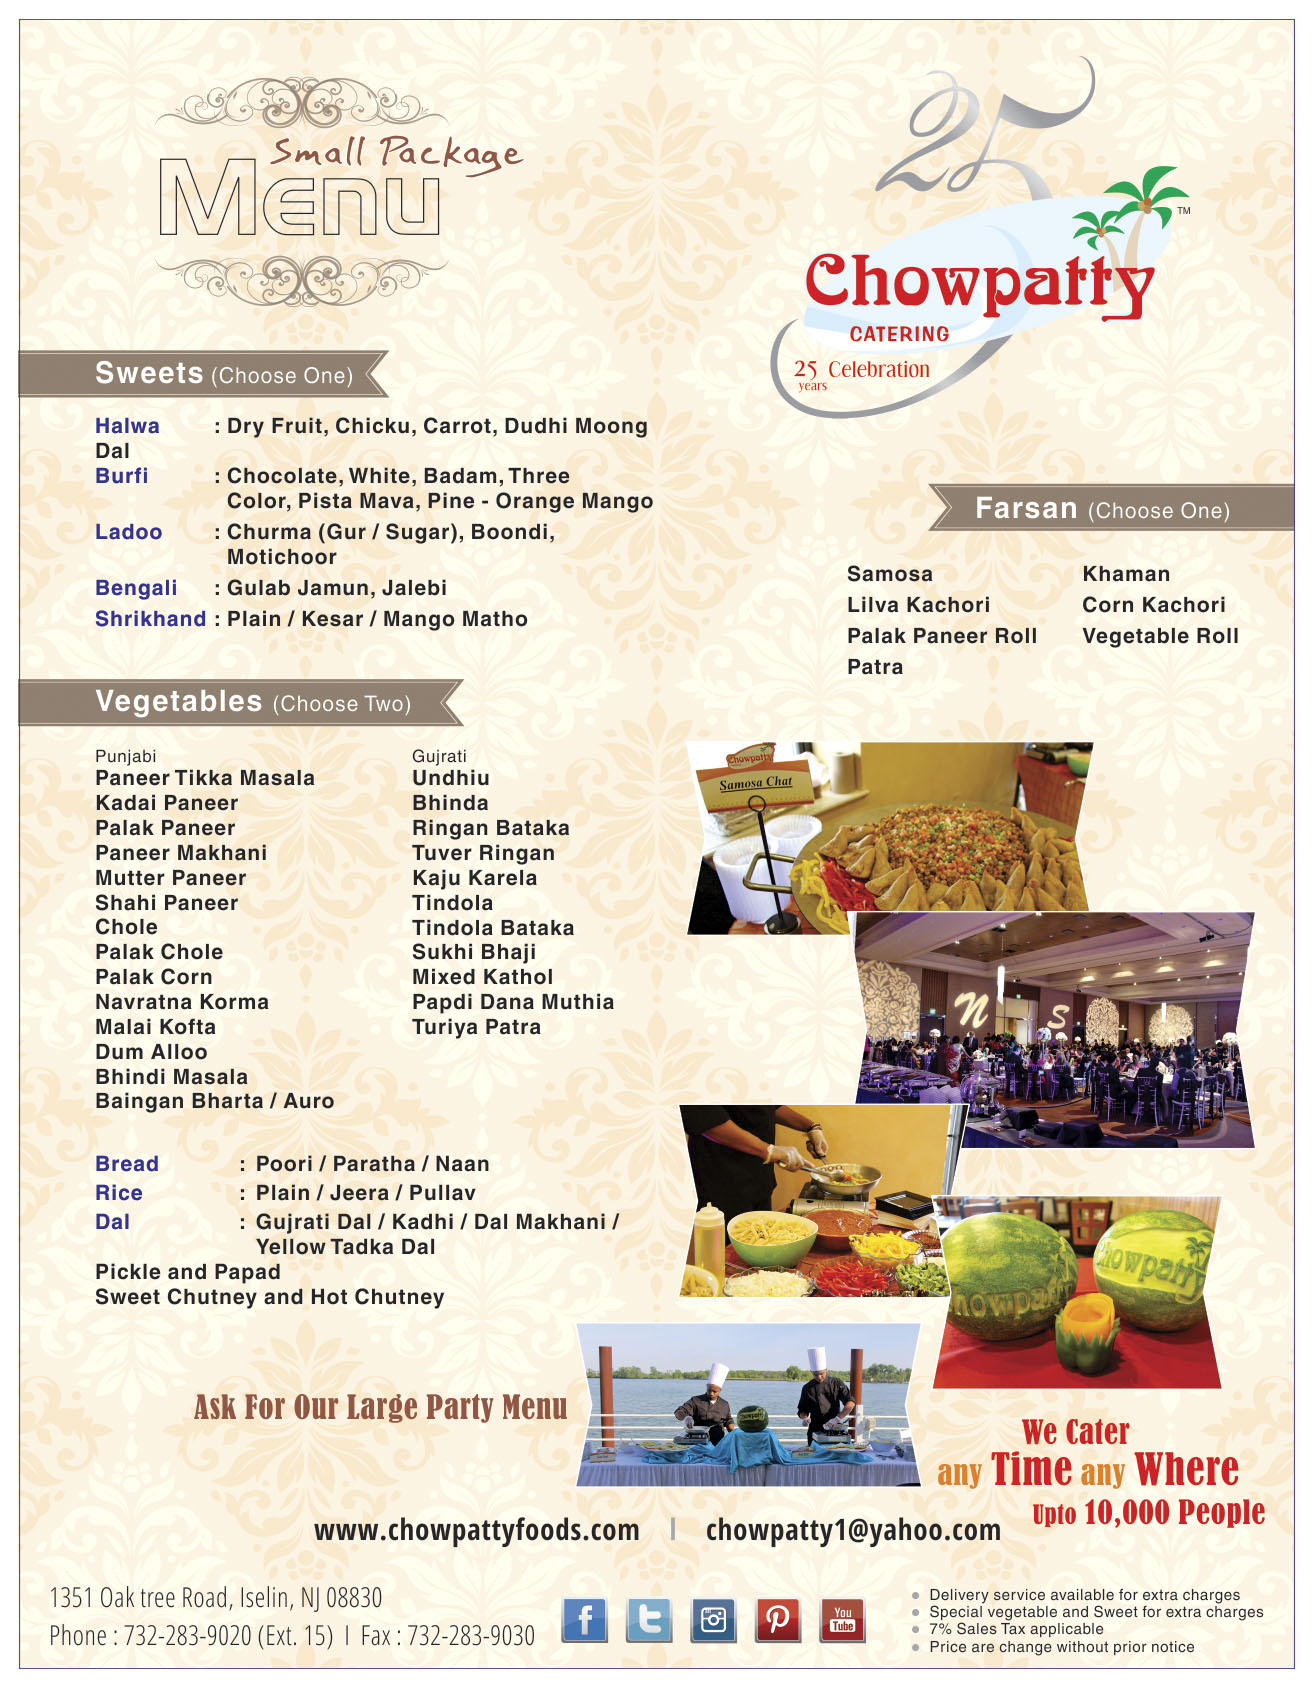 Small Package Chowpatty Foods